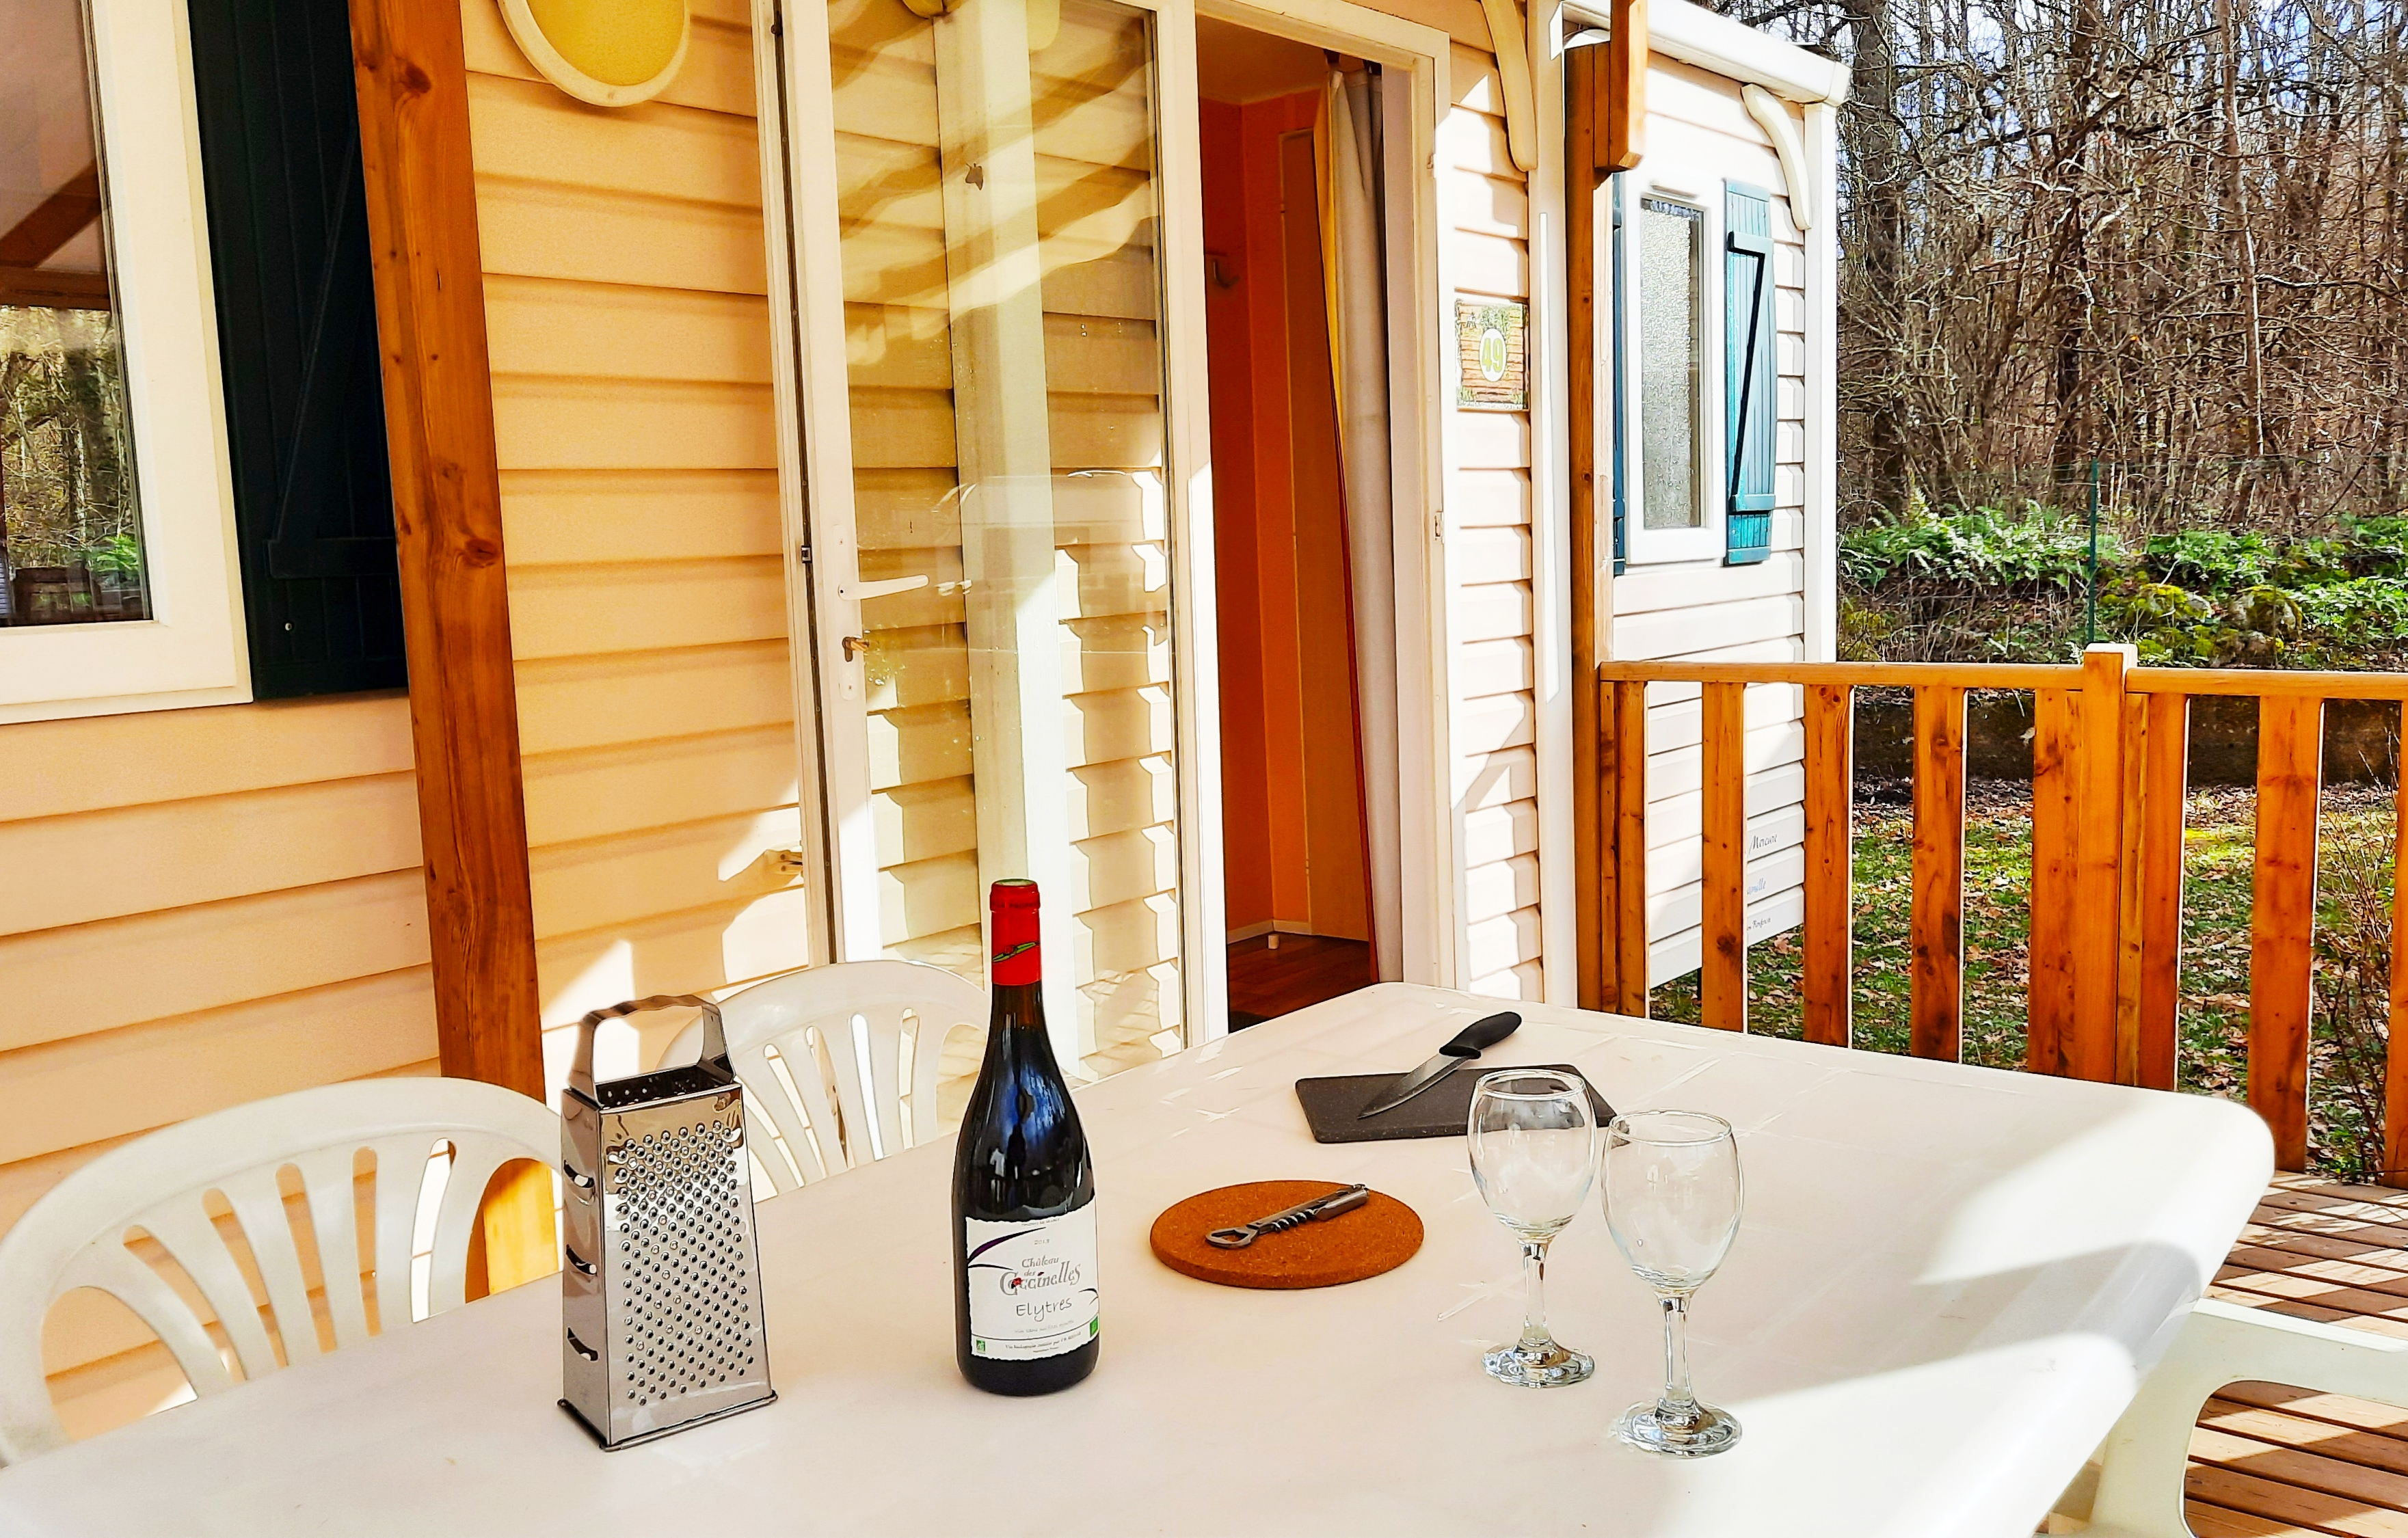 Location - Cottage Confort 4/5 Pers 2 Chb 1 Sdb - Camping La Roucateille